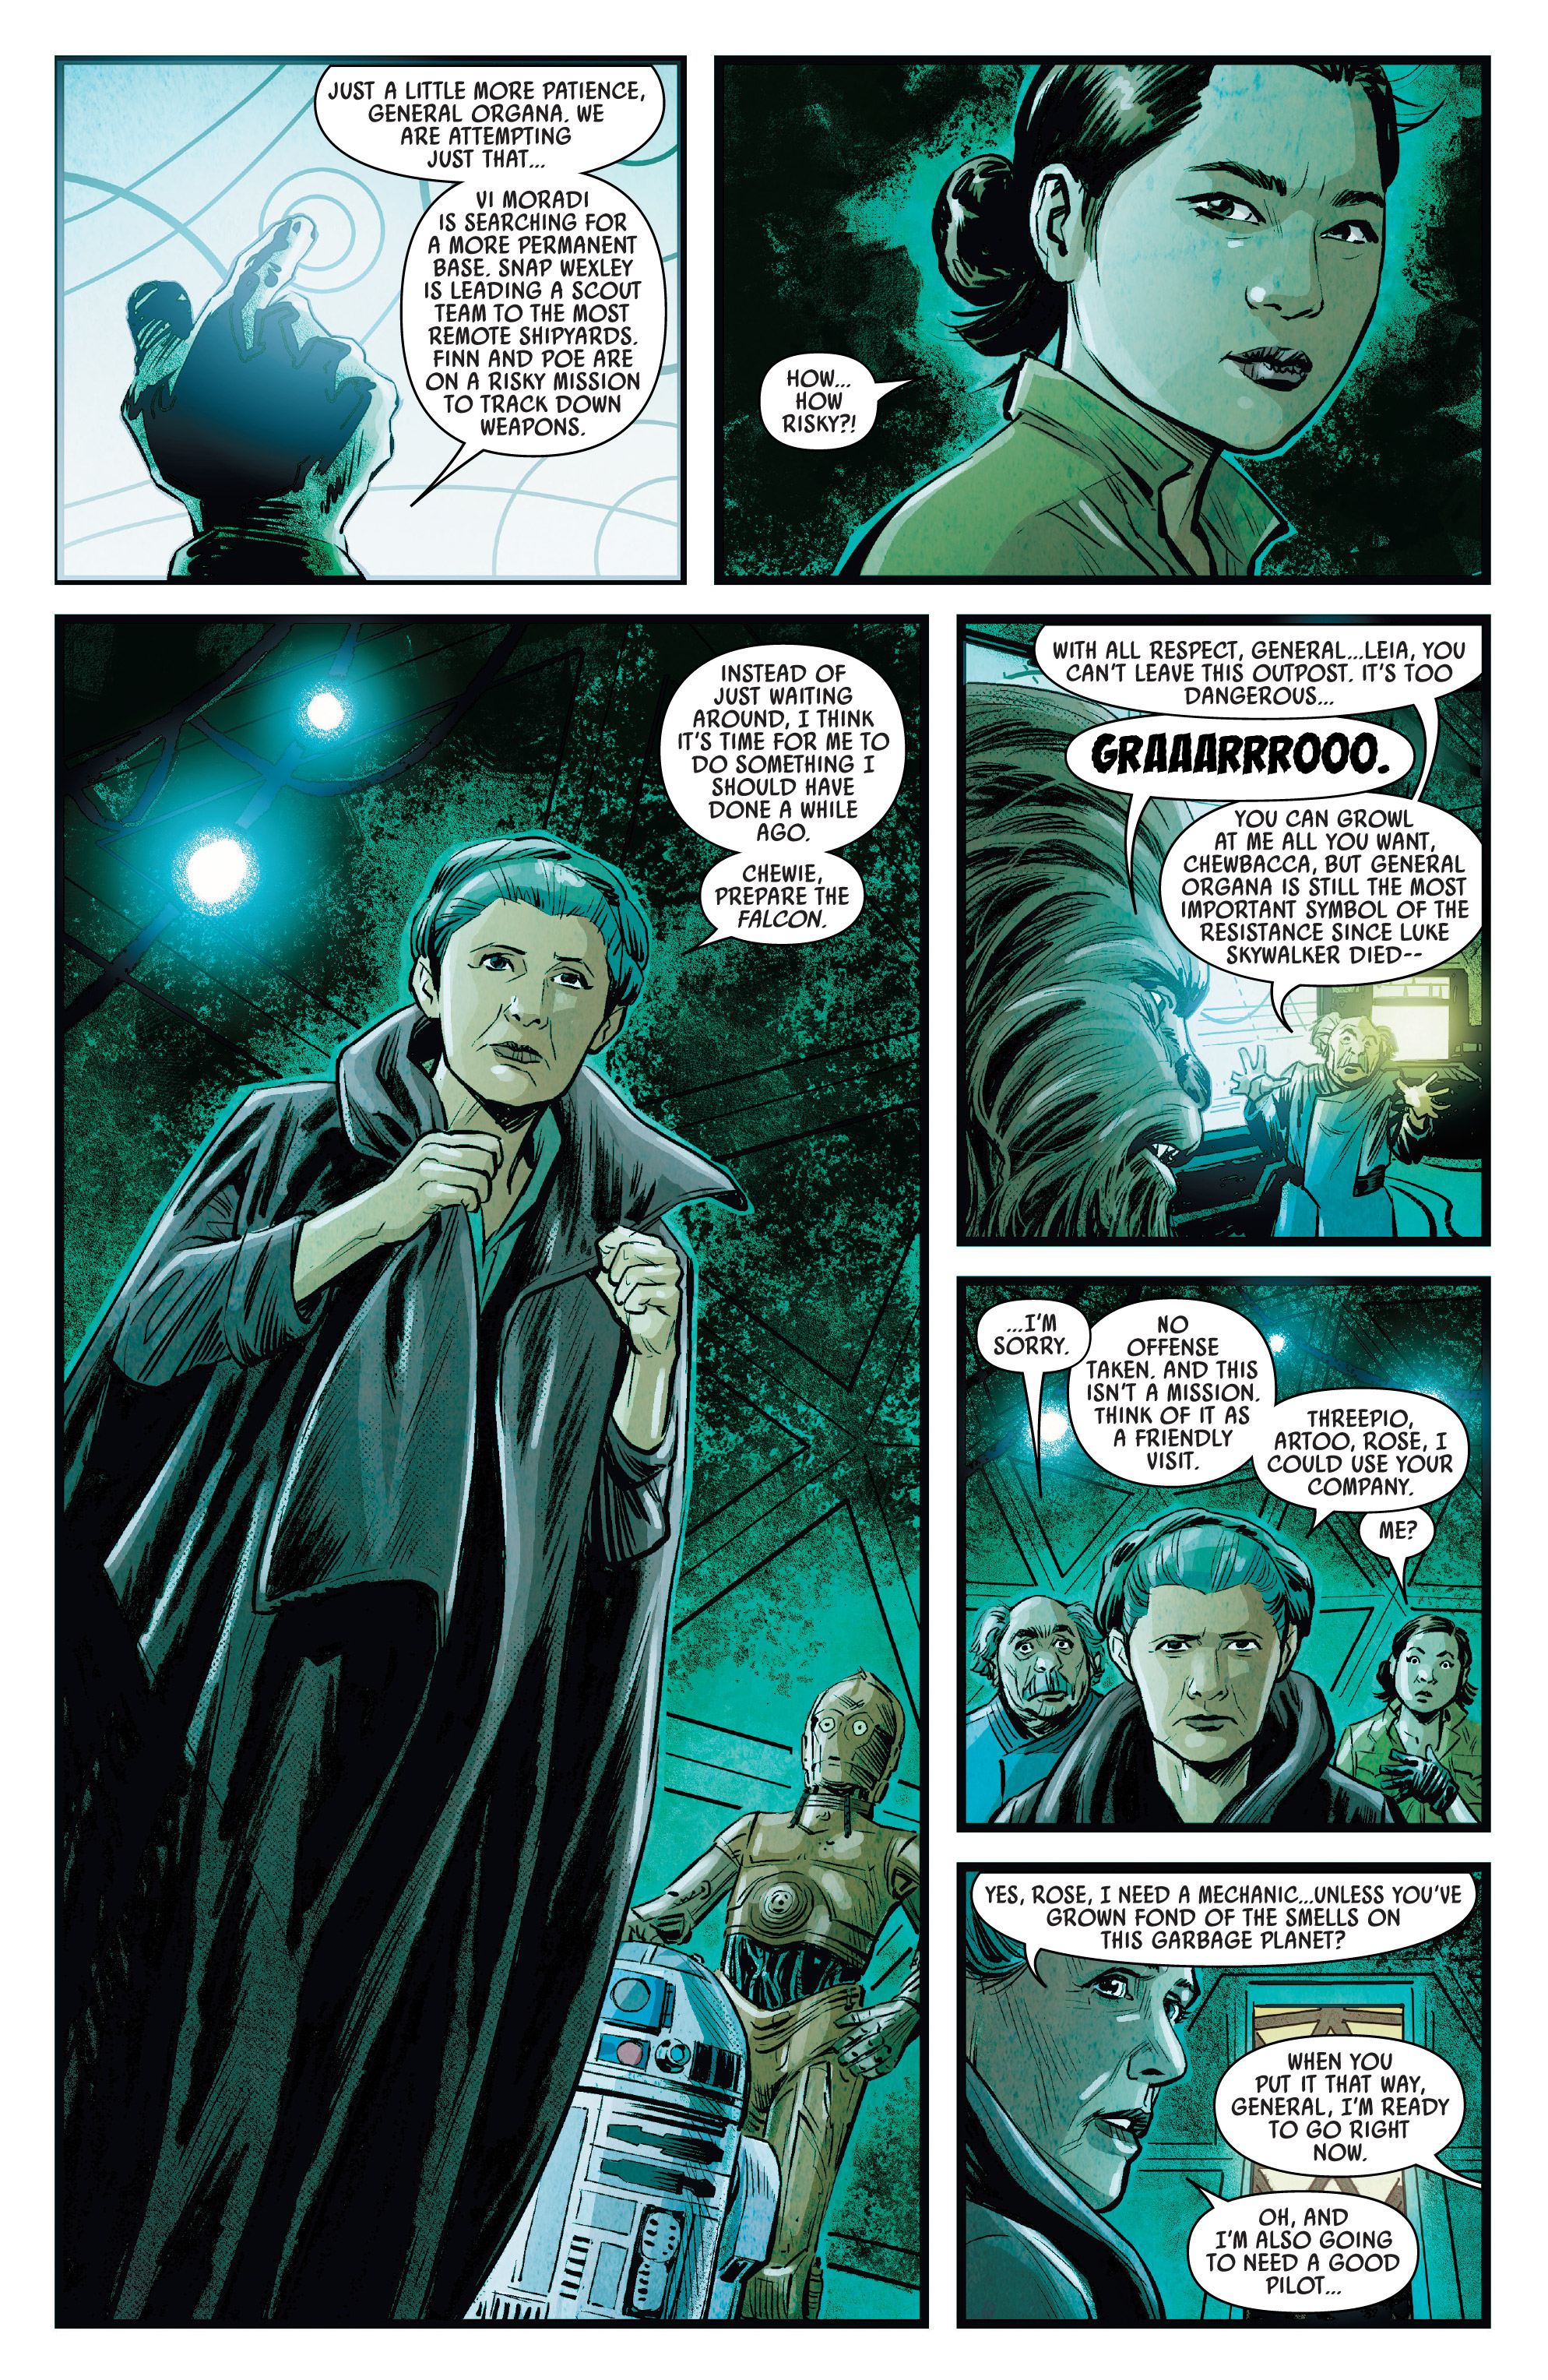 Journey To Star Wars The Rise Of Skywalker Allegiance 2019 Chapter 1 Page 11